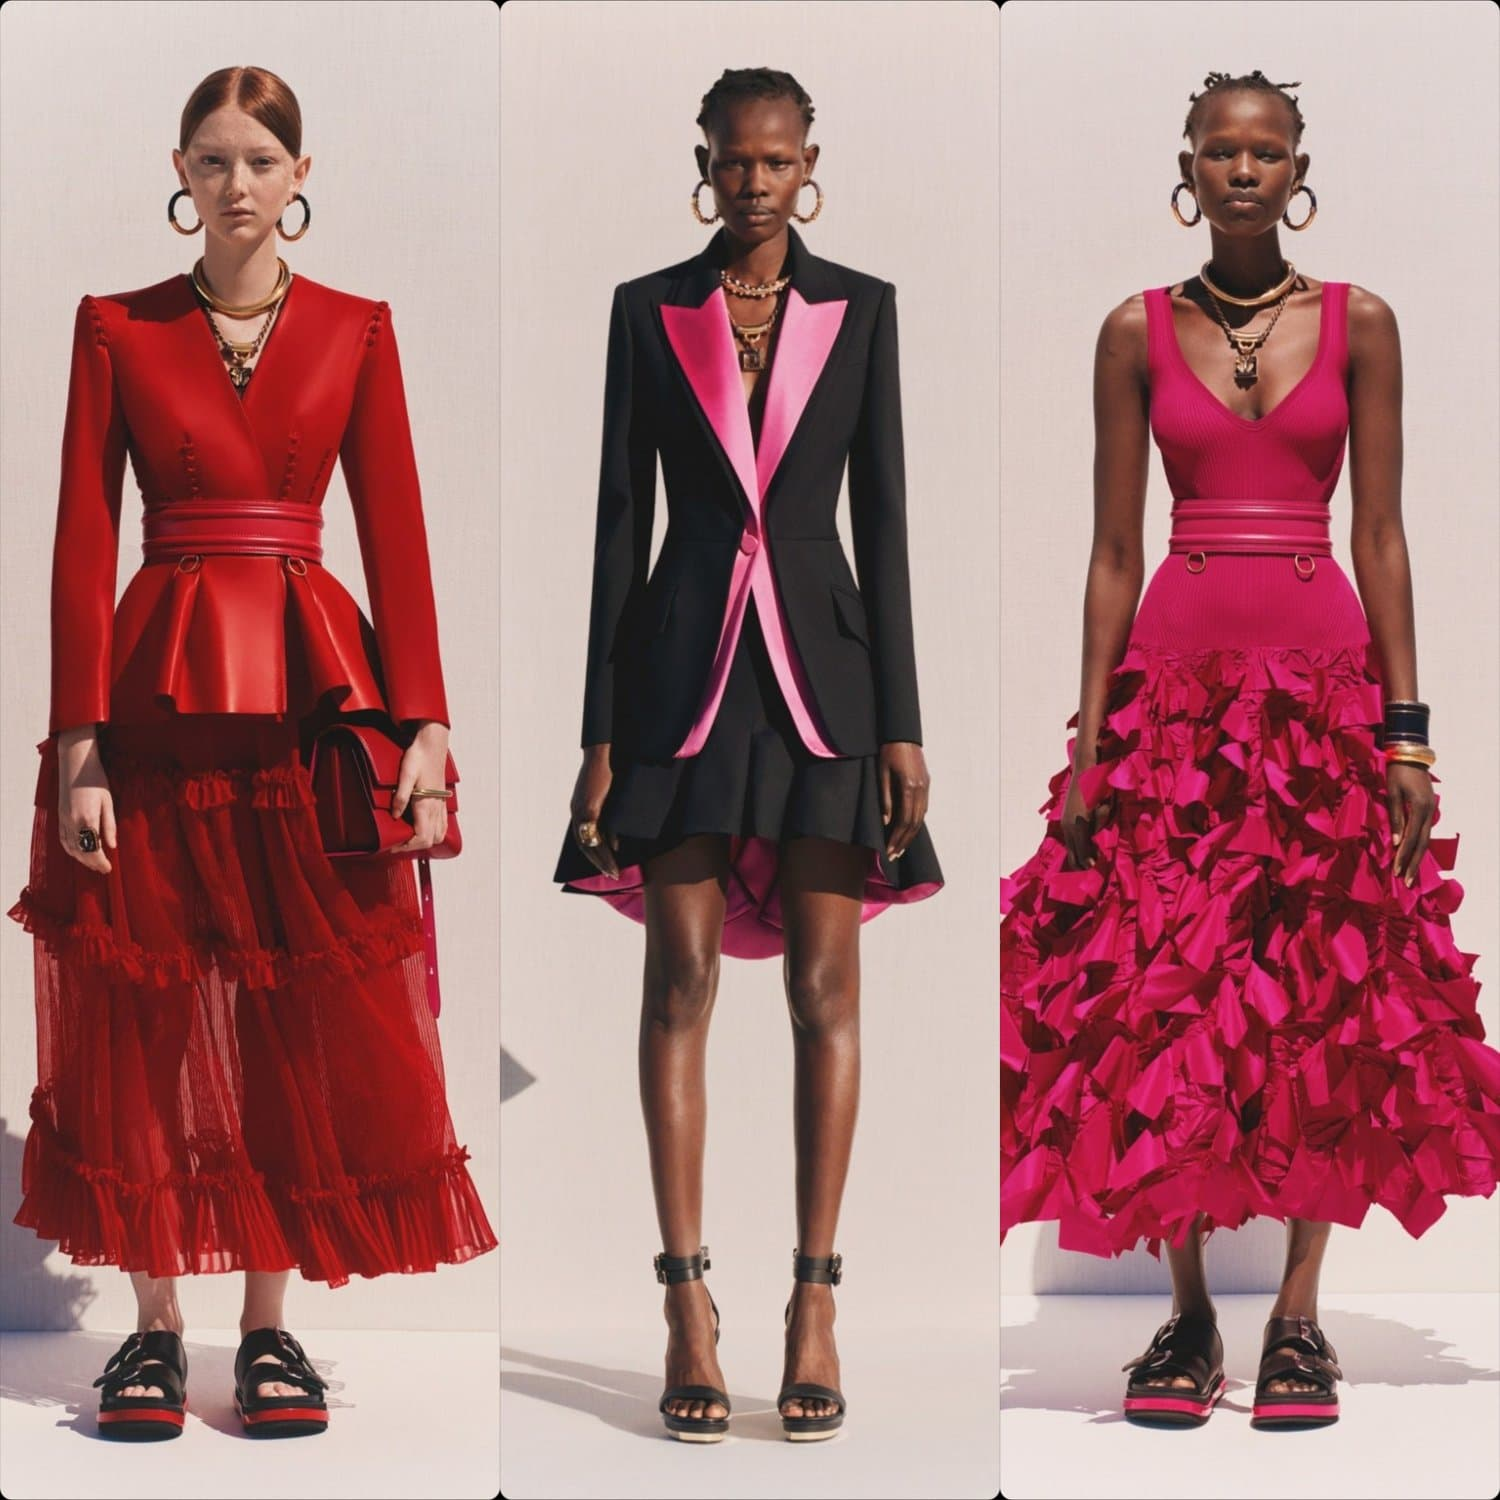 Alexander McQueen Cruise 2020 Resort London. RUNWAY MAGAZINE ® Collections. RUNWAY NOW / RUNWAY NEW